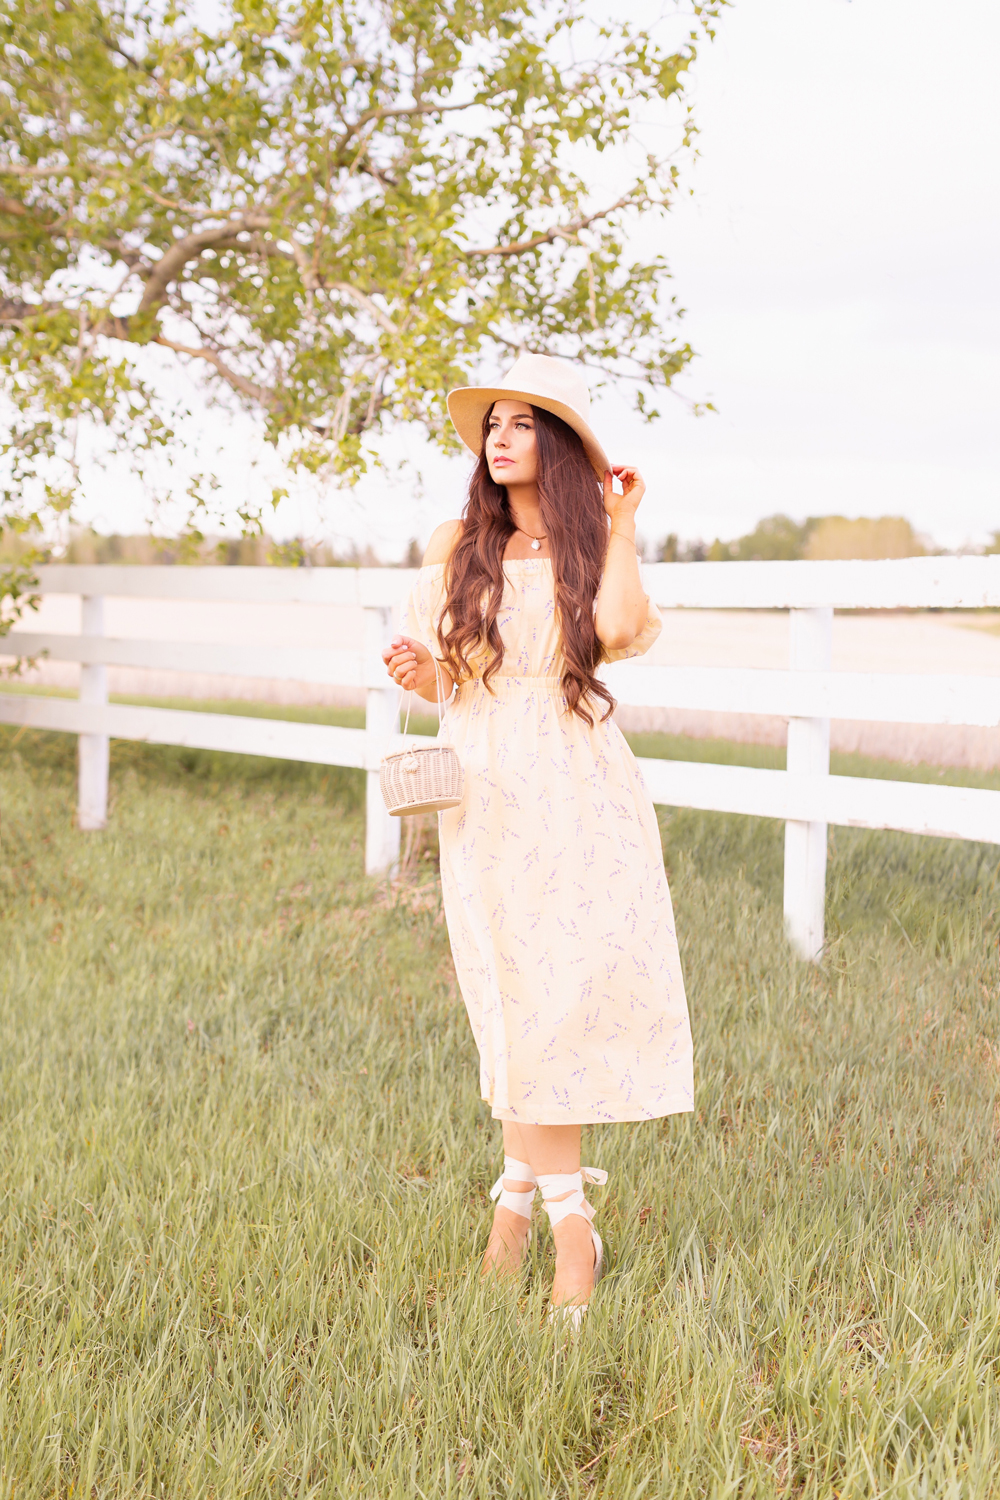 H&M Wildflower Collection Review | Brunette woman wearing a H&M A Meadow of Wildflowers Collection Off-the-shoulder Dress with a woven fedora, straw basket bag and cream espadrilles on an acreage with a white fence | H&M Wildflower Collection Canada | H&M Wildflower Collection Canada | Spring/Summer 2021 Trends | The Best Cotton Dresses 2021 | The Best H&M Dresses Summer 2021 | Alberta Wildflower Field | Cottage Core Fashion | Calgary Creative Lifestyle & Fashion Blogger // JustineCelina.com